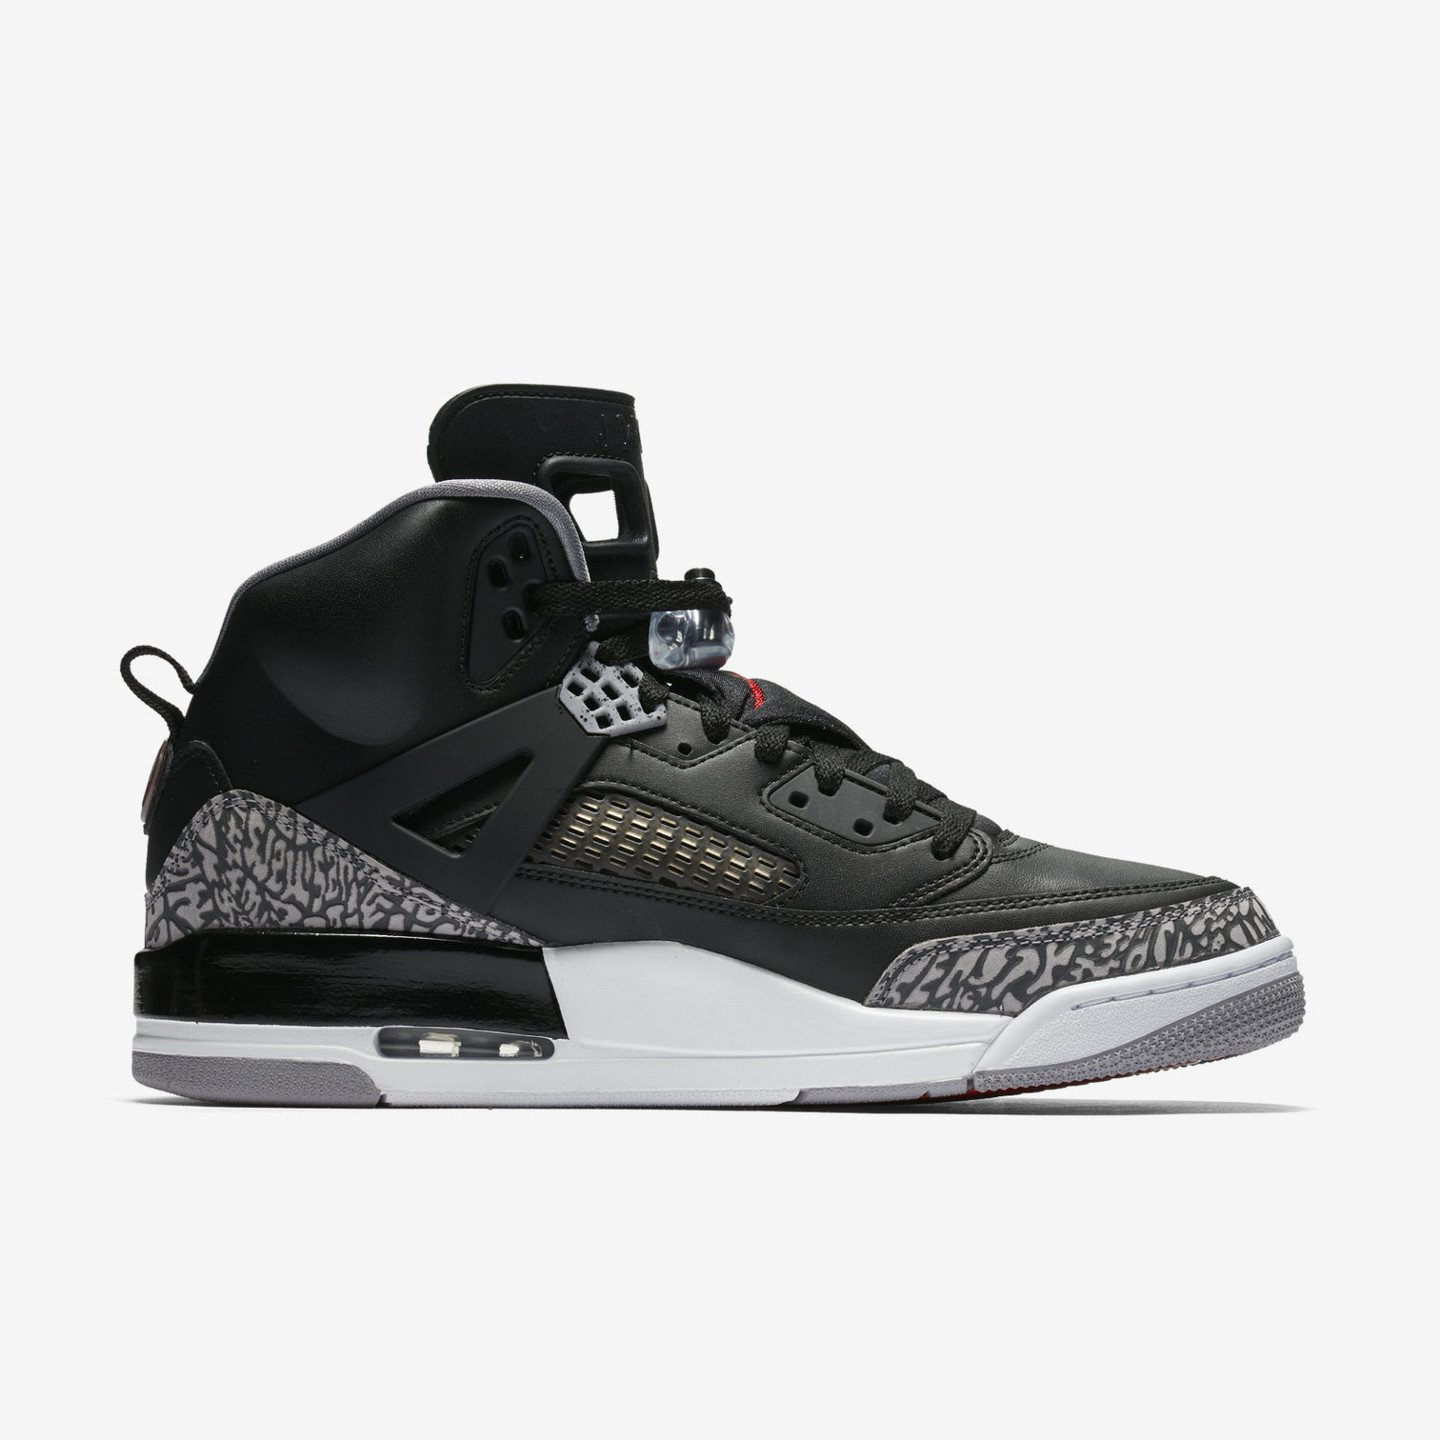 Jordan Air Jordan Spizike Black / Varsity Red / Cement Grey / White 315371-034